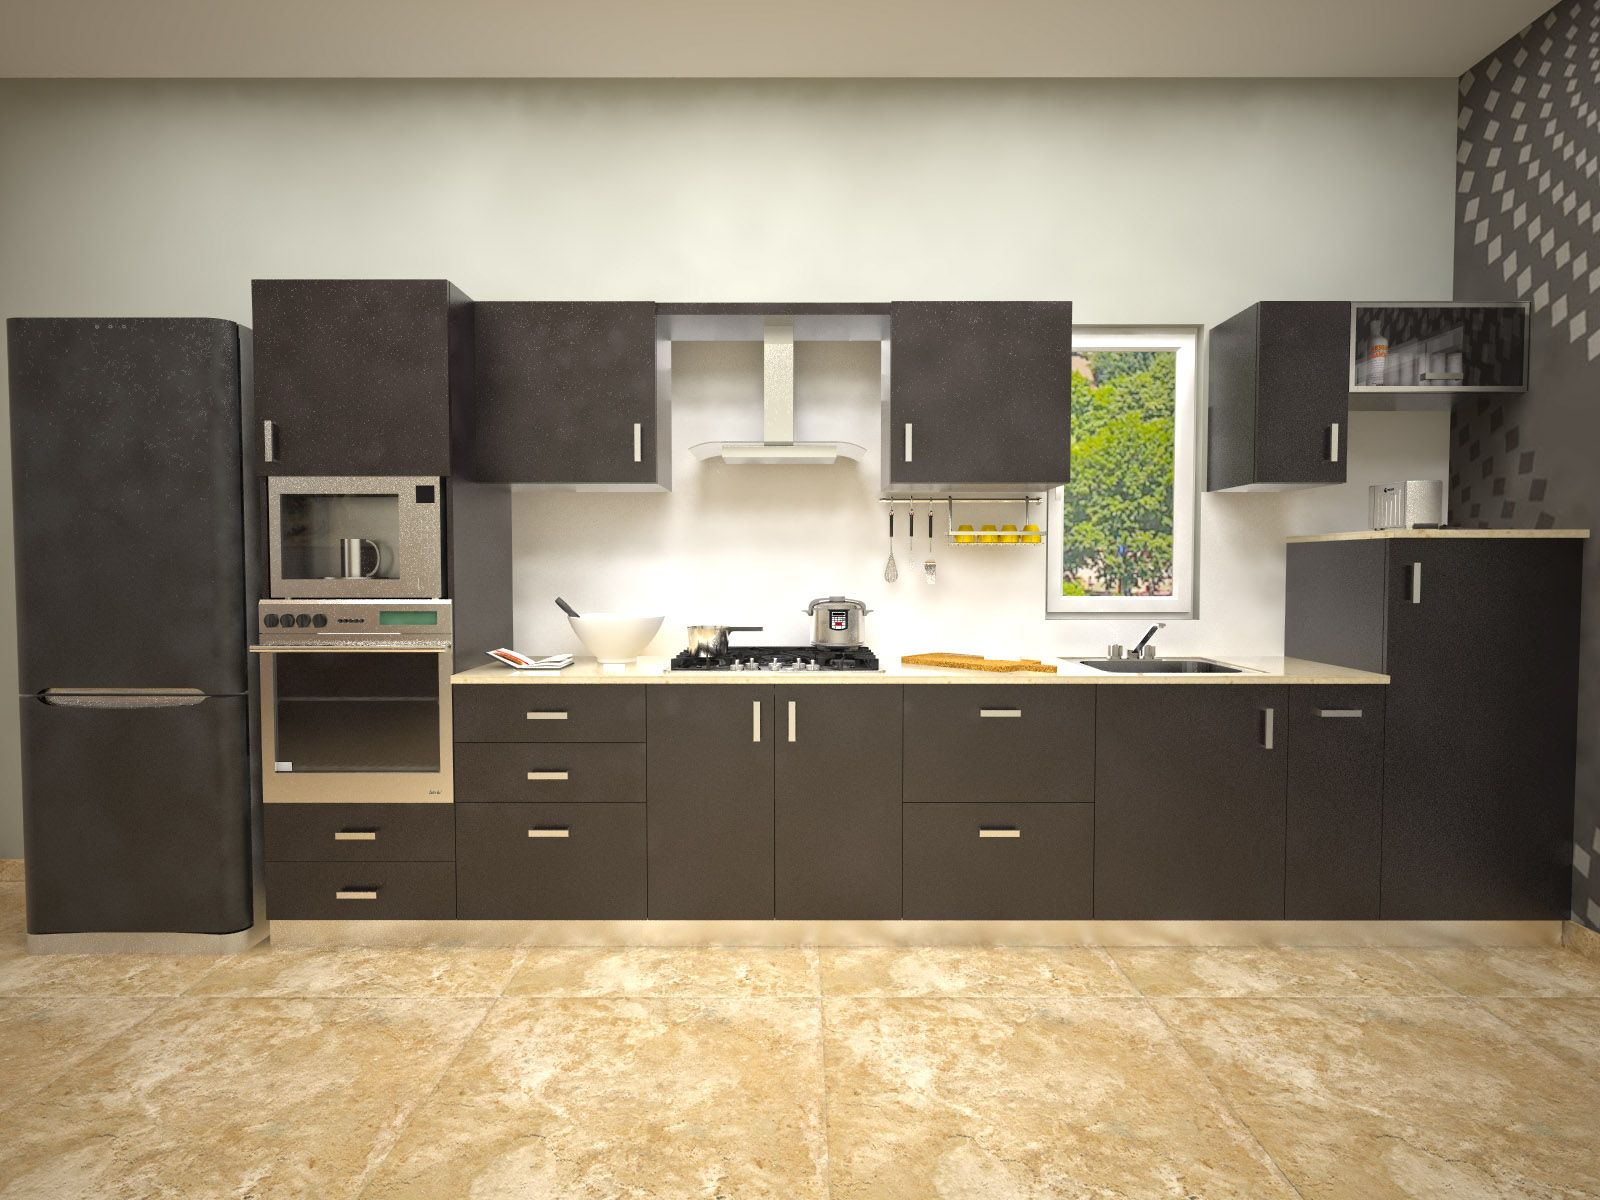 Modular Kitchen Interior Design Ideas ~ Aamoda kitchen gorgeously minimal modular